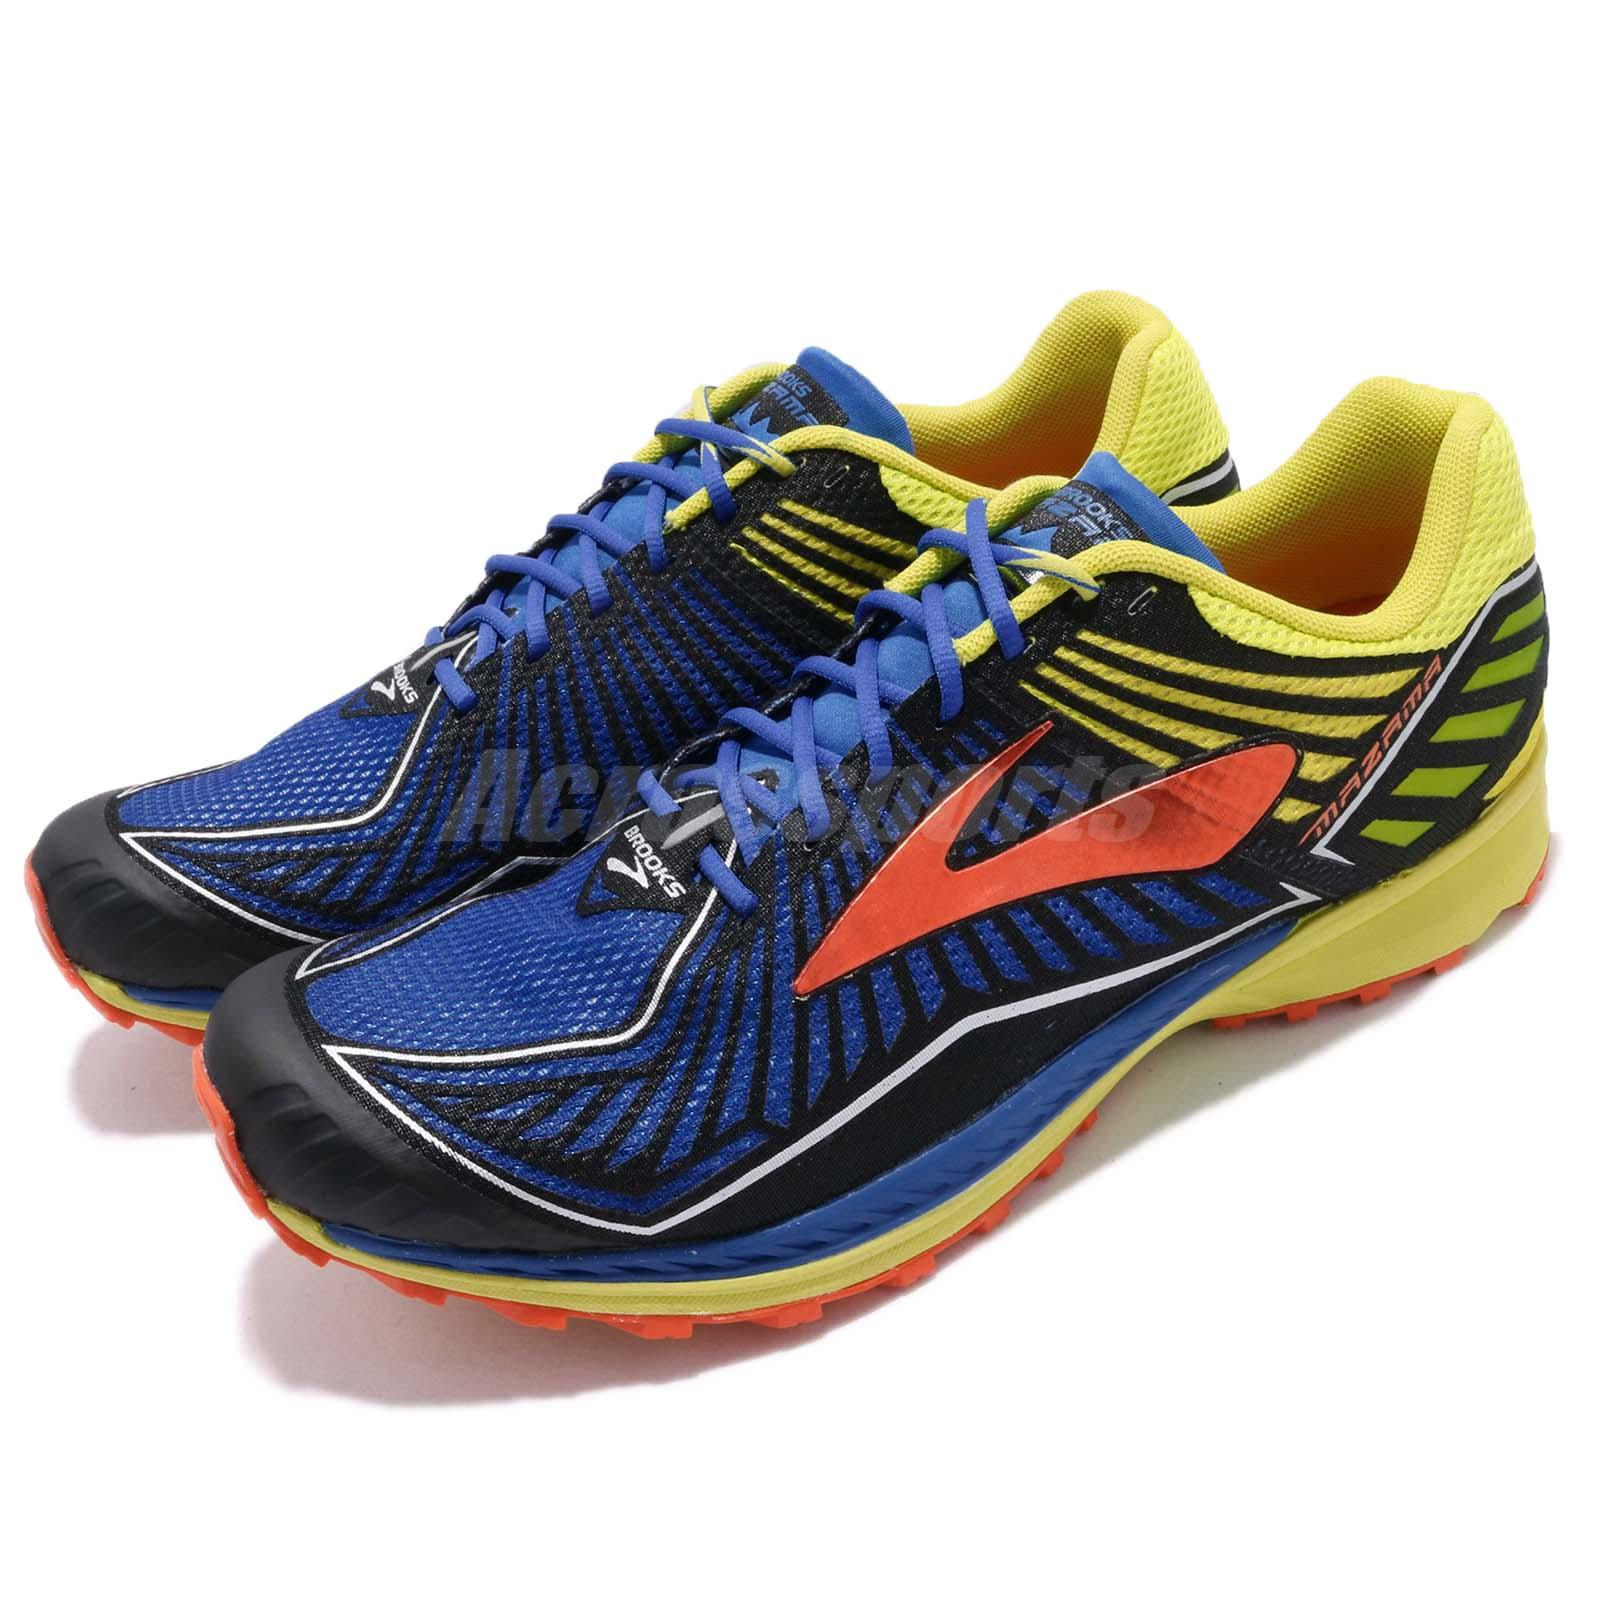 ebade612dcce1 Details about Brooks Mazama D Blue Yellow Bronze Men Trail Running Shoes  Sneakers 1102351 D